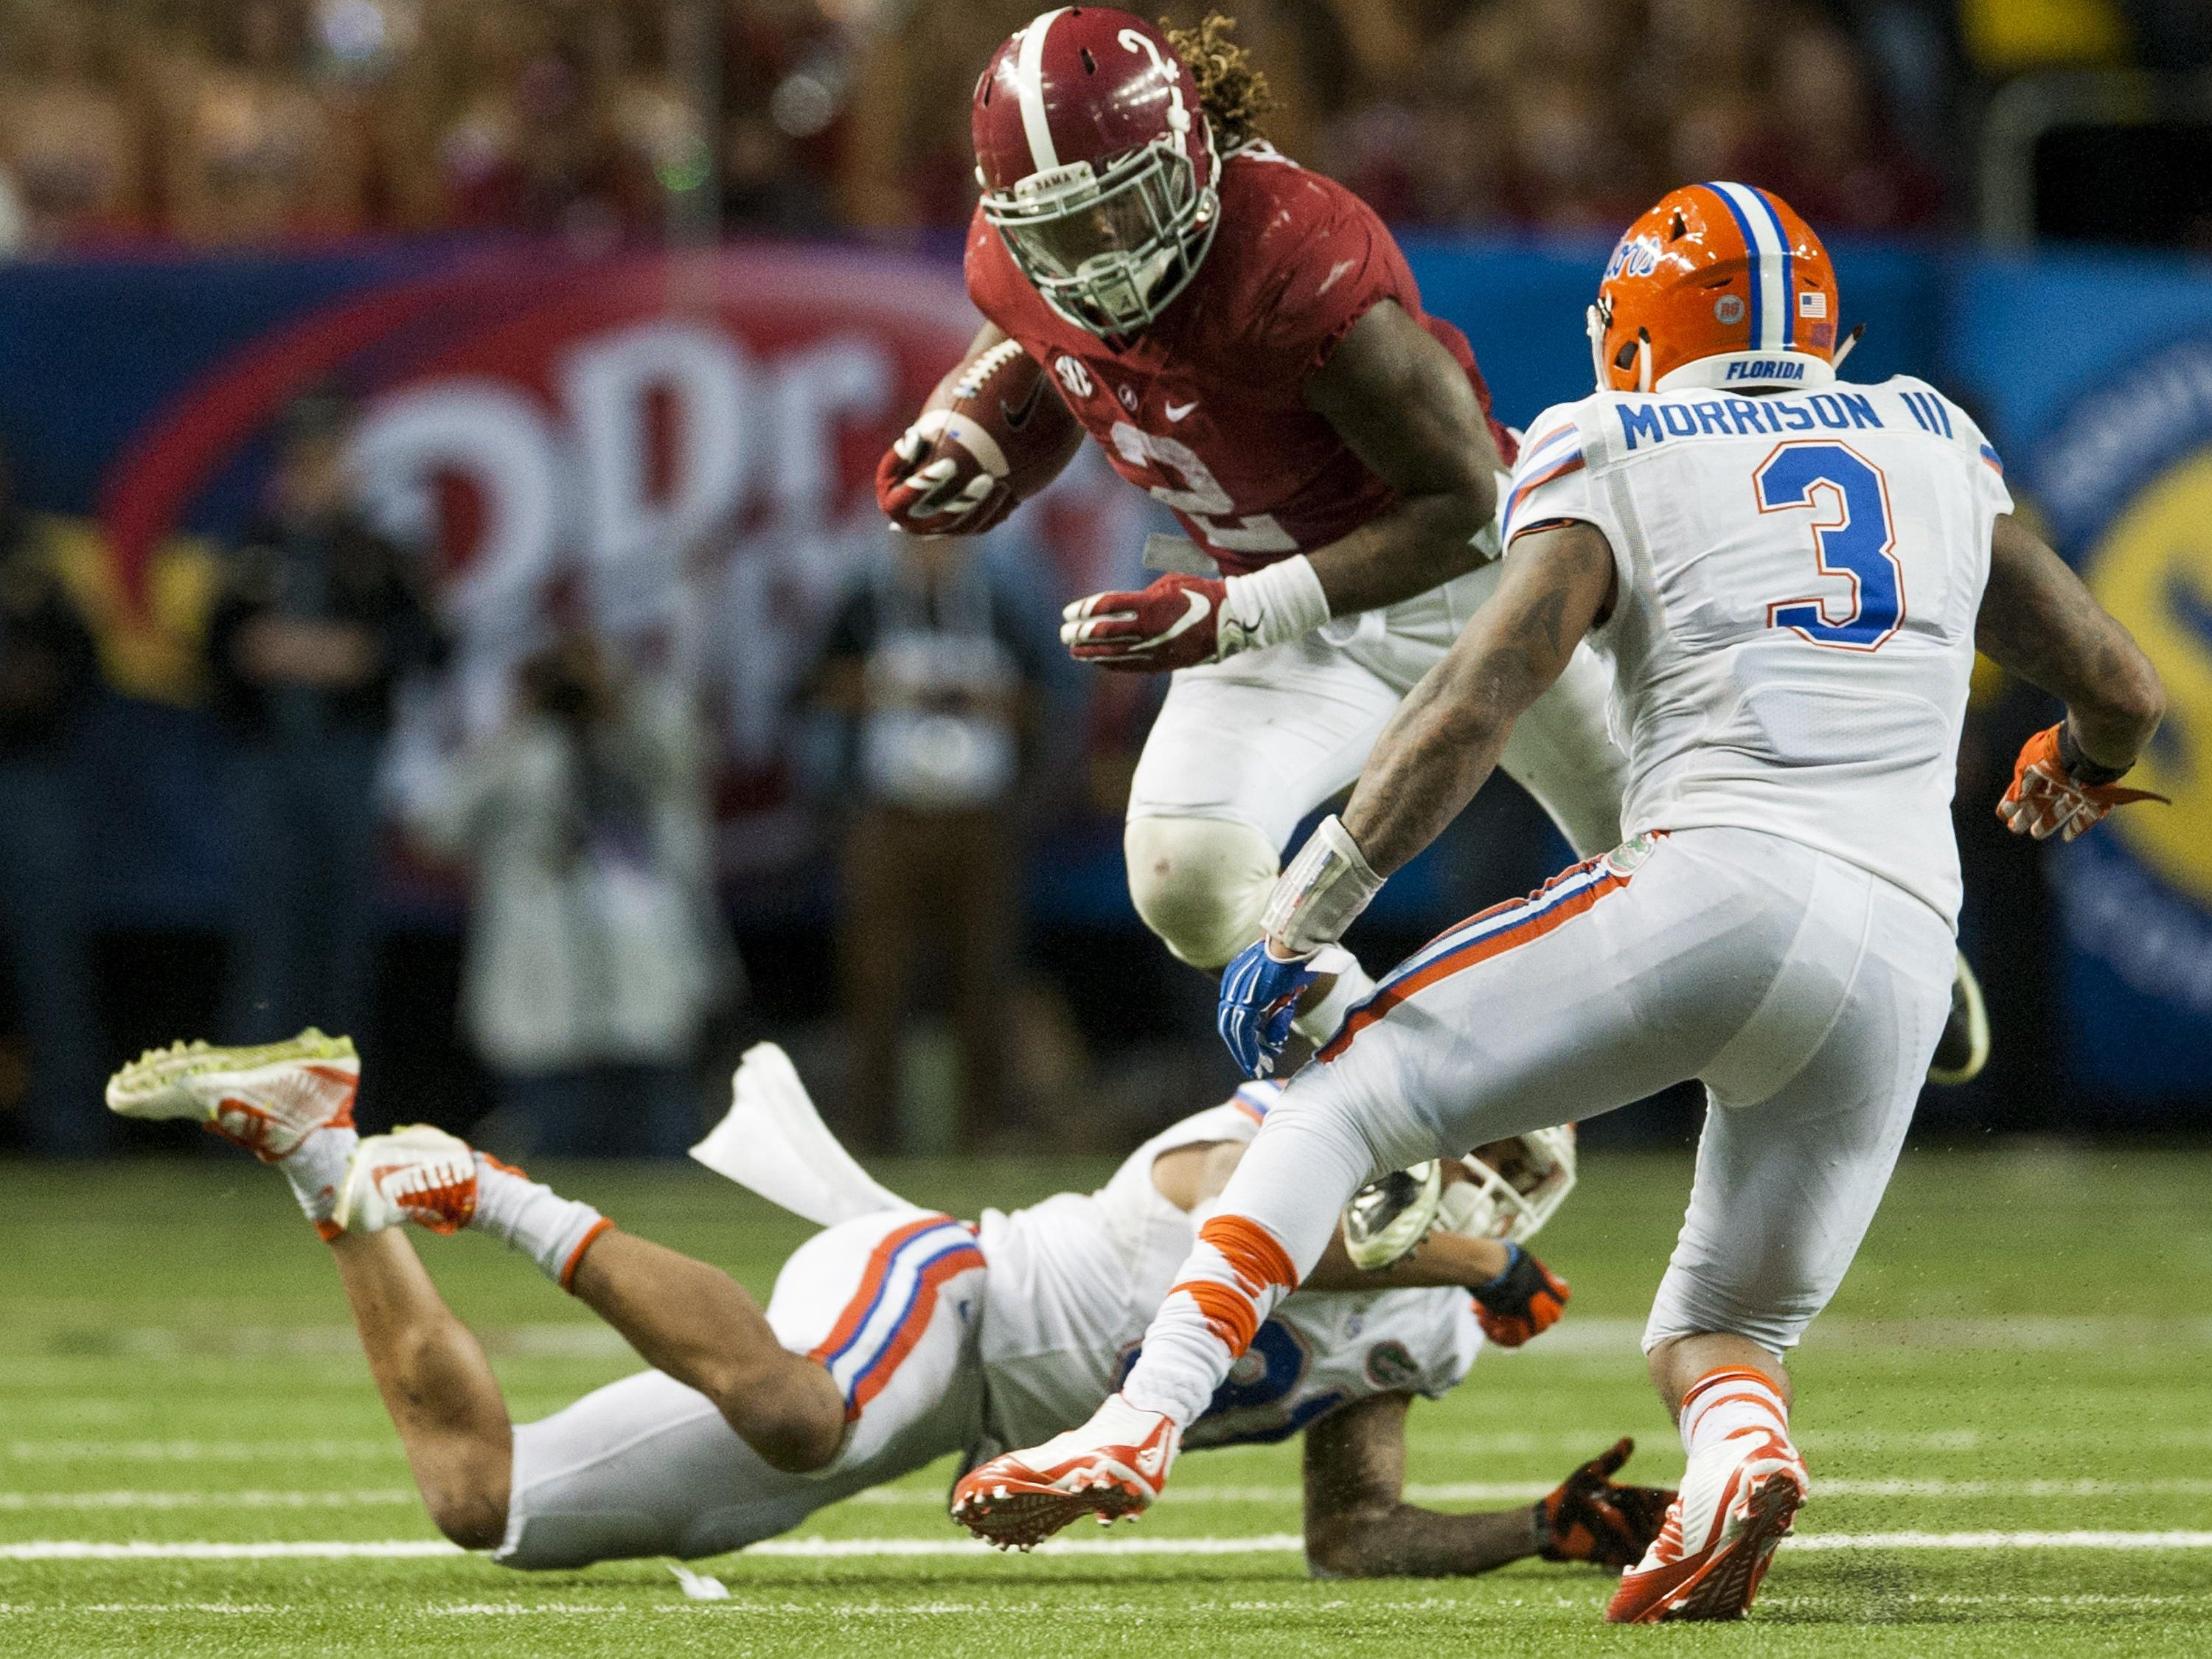 Alabama running back Derrick Henry (2) fights for yardage against Florida in the SEC Championship Game in Atlanta, Ga. on Saturday December 5, 2015. (Mickey Welsh / Montgomery Advertiser)